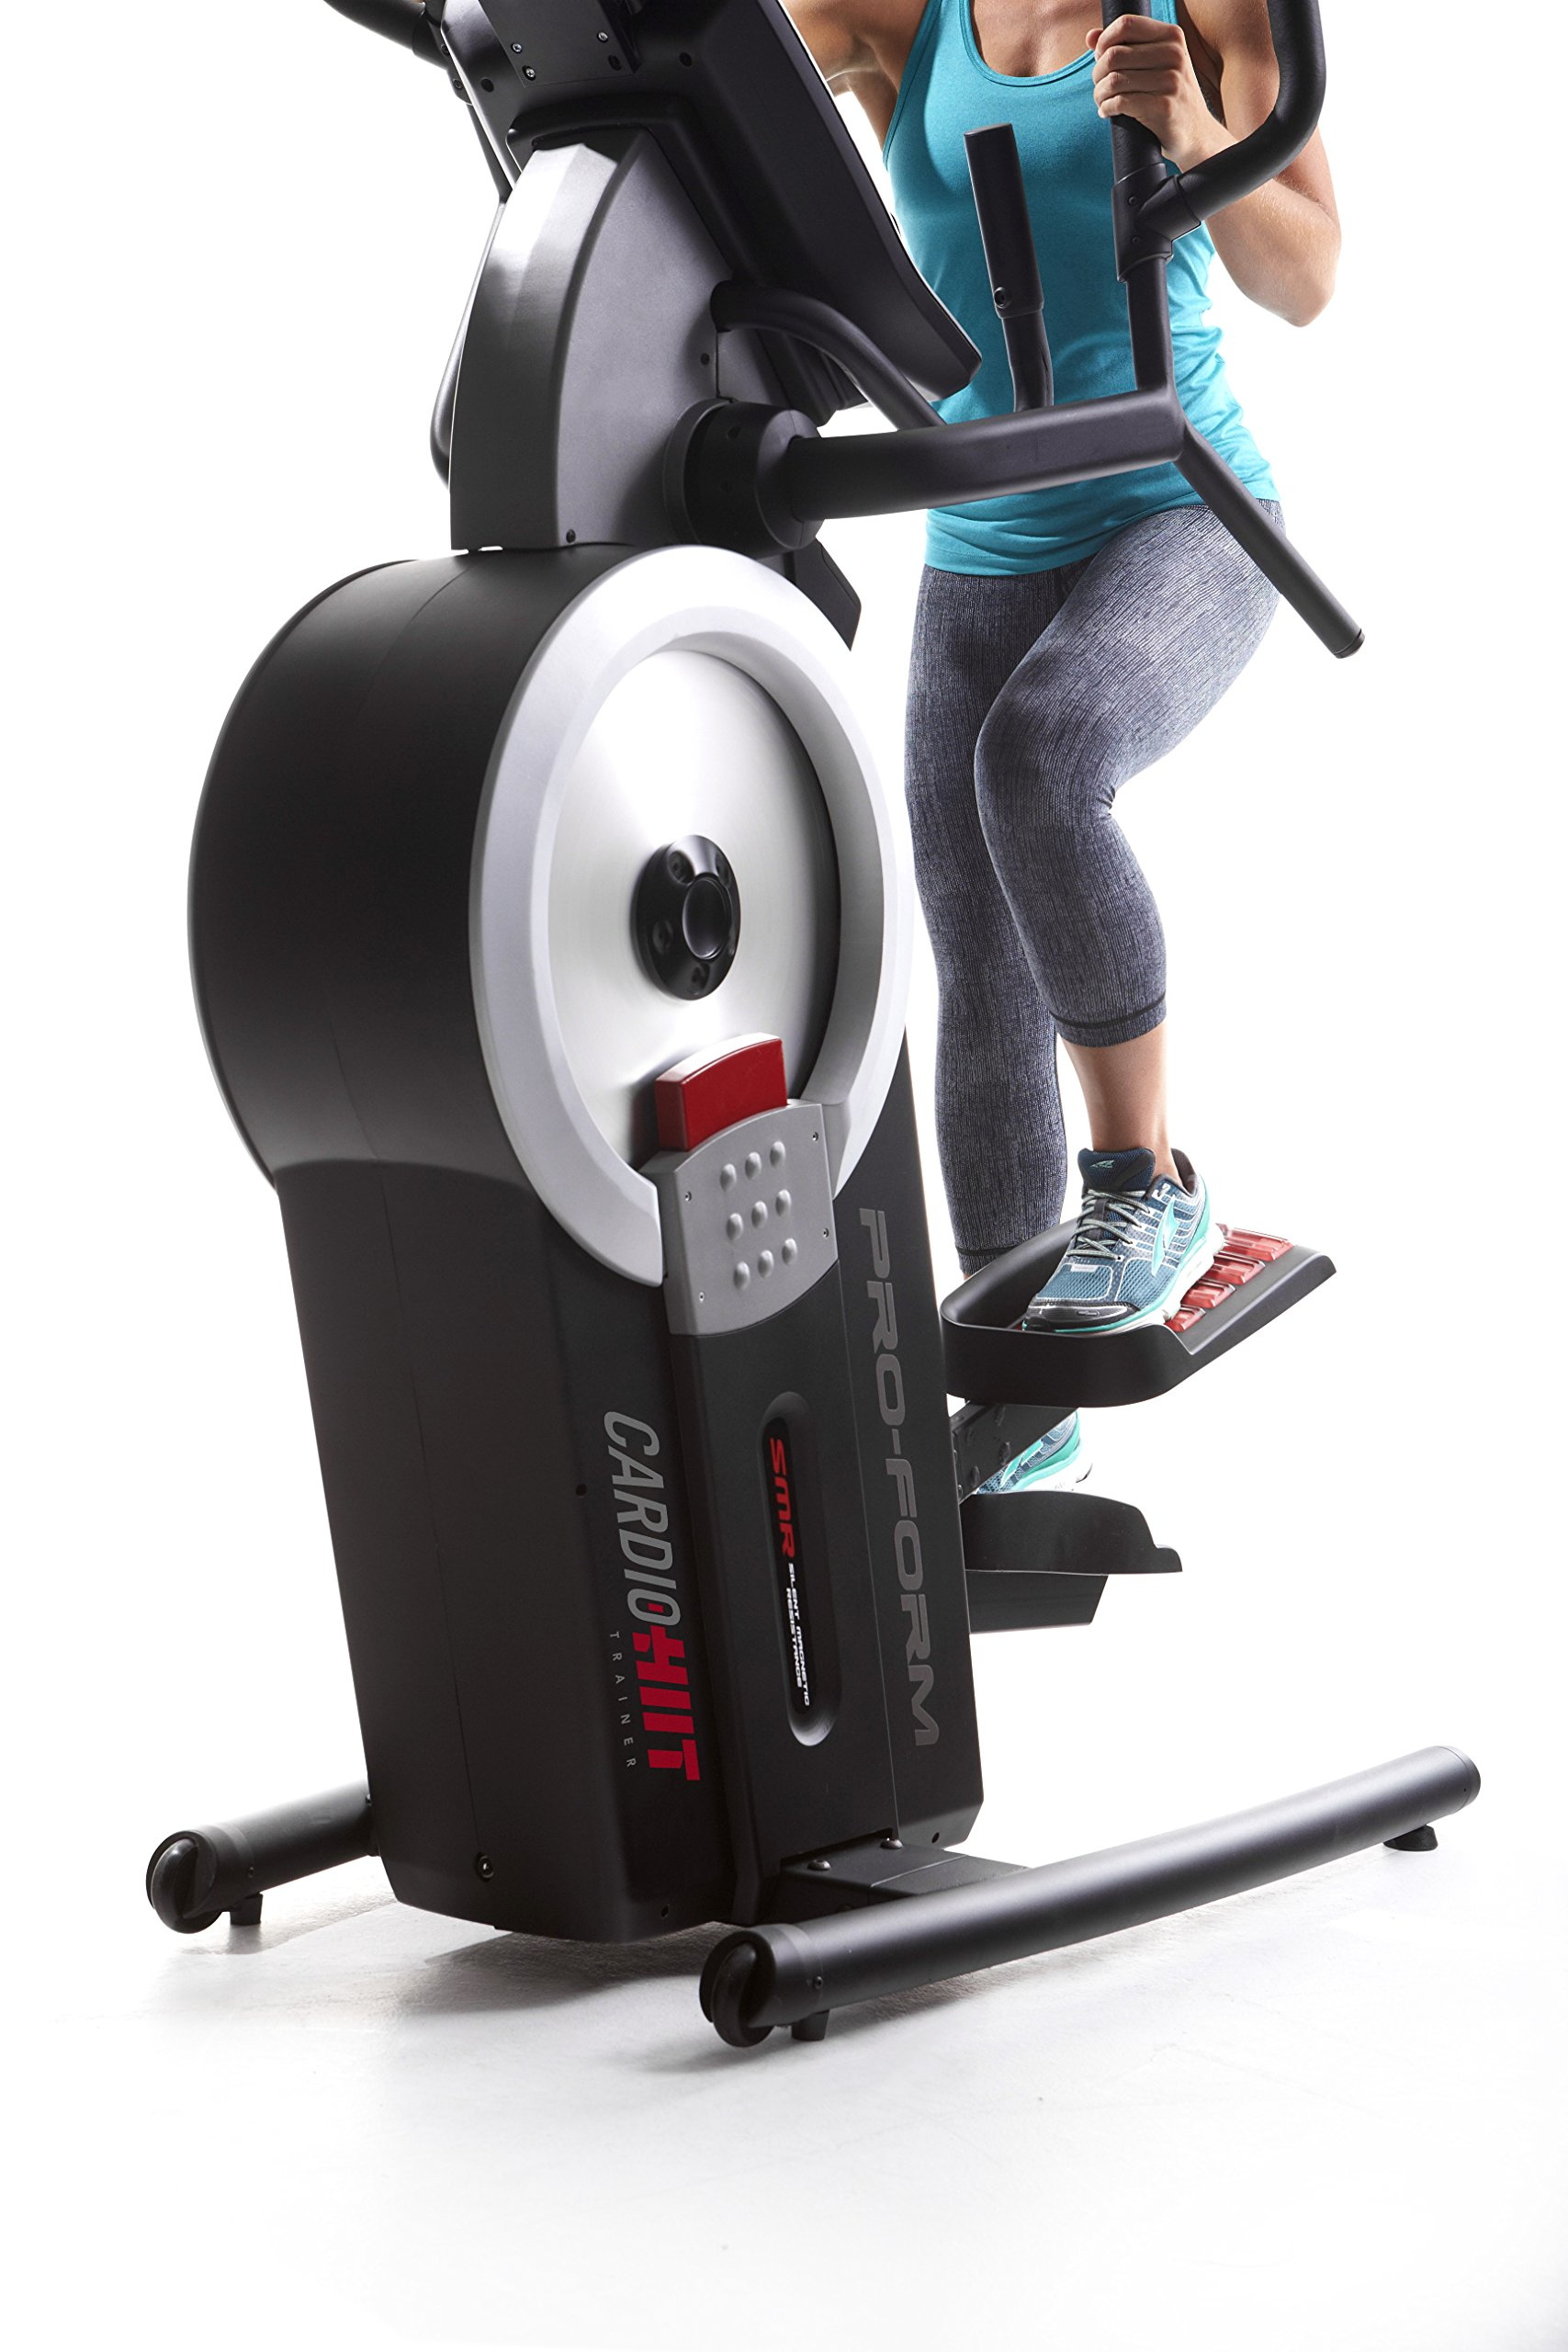 ProForm Cardio HIIT Elliptical Trainer by ProForm (Image #14)